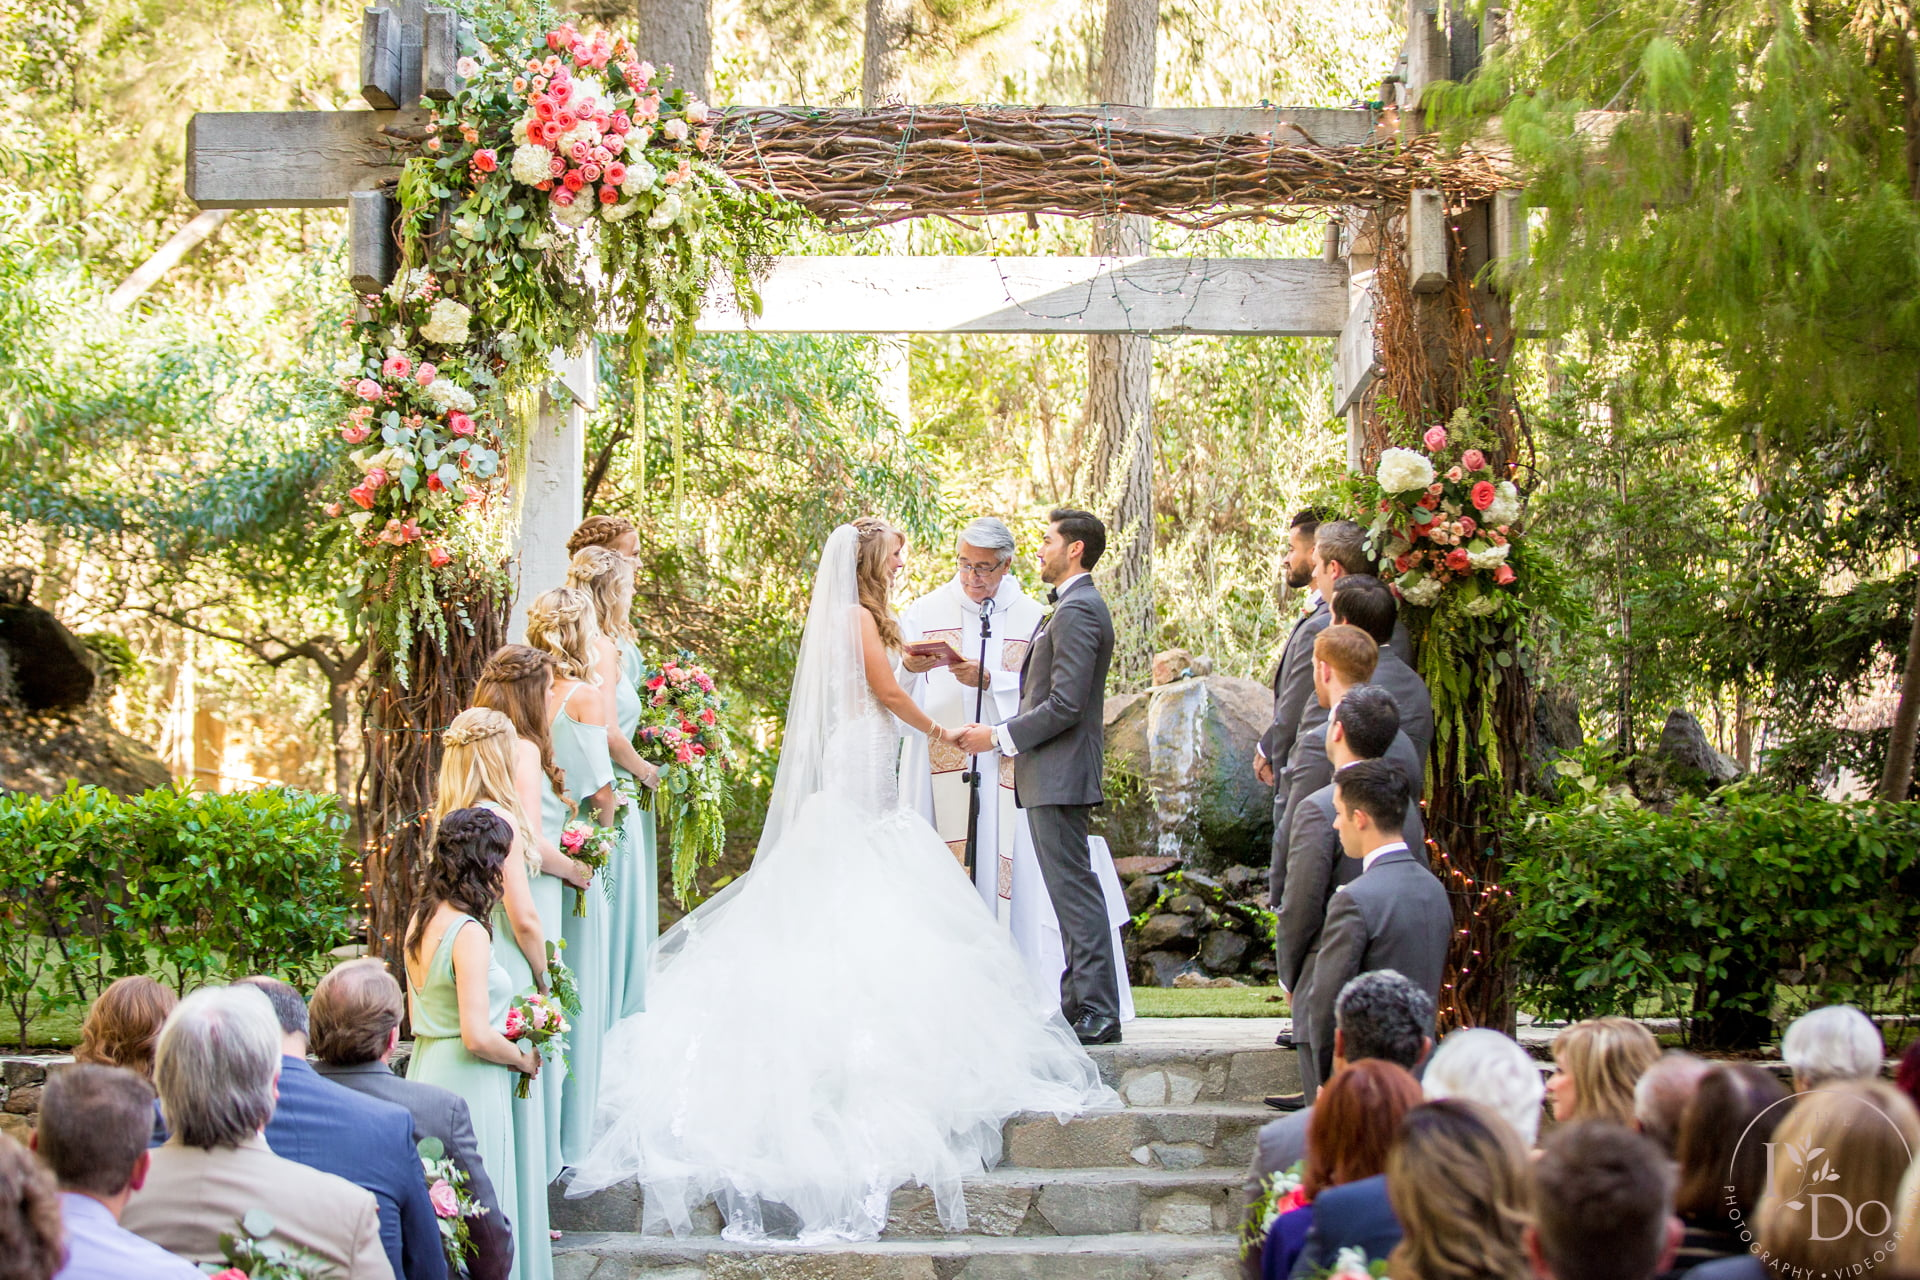 Calamigos Ranch, The Redwood Room – Wedding Photography and Videography